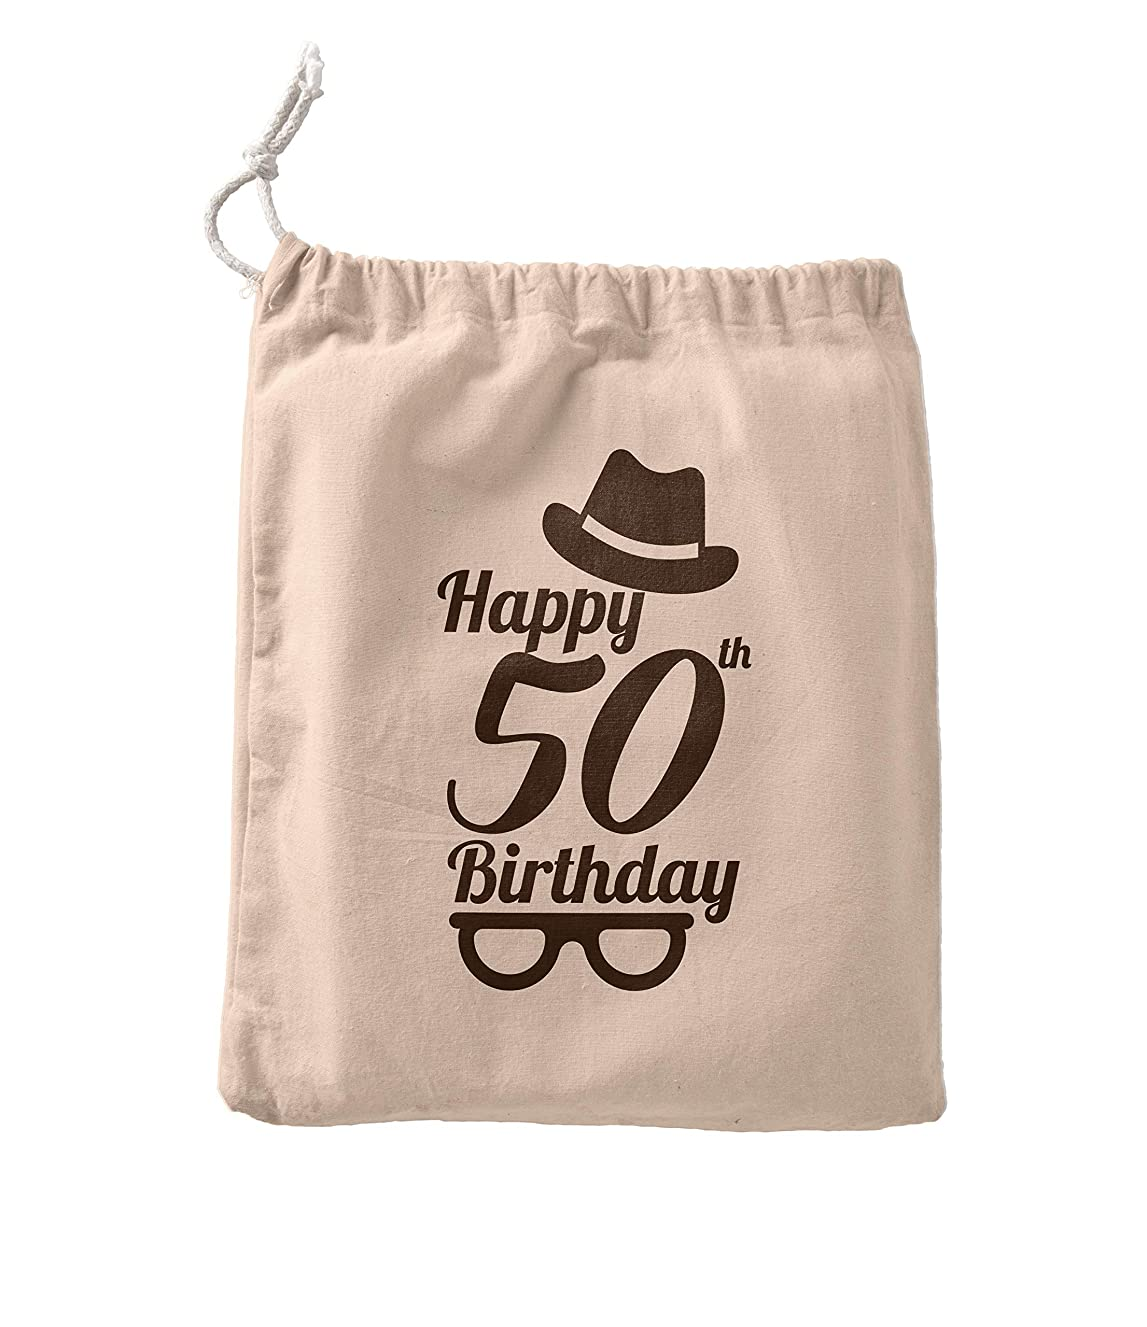 Birthday Favor Bags - Best Selling Items - Happy 50th Birthday - 50th Birthday Gift - Birthday Party Favors - Birthday Party - Party Favor Bags #FAV_BAG_16